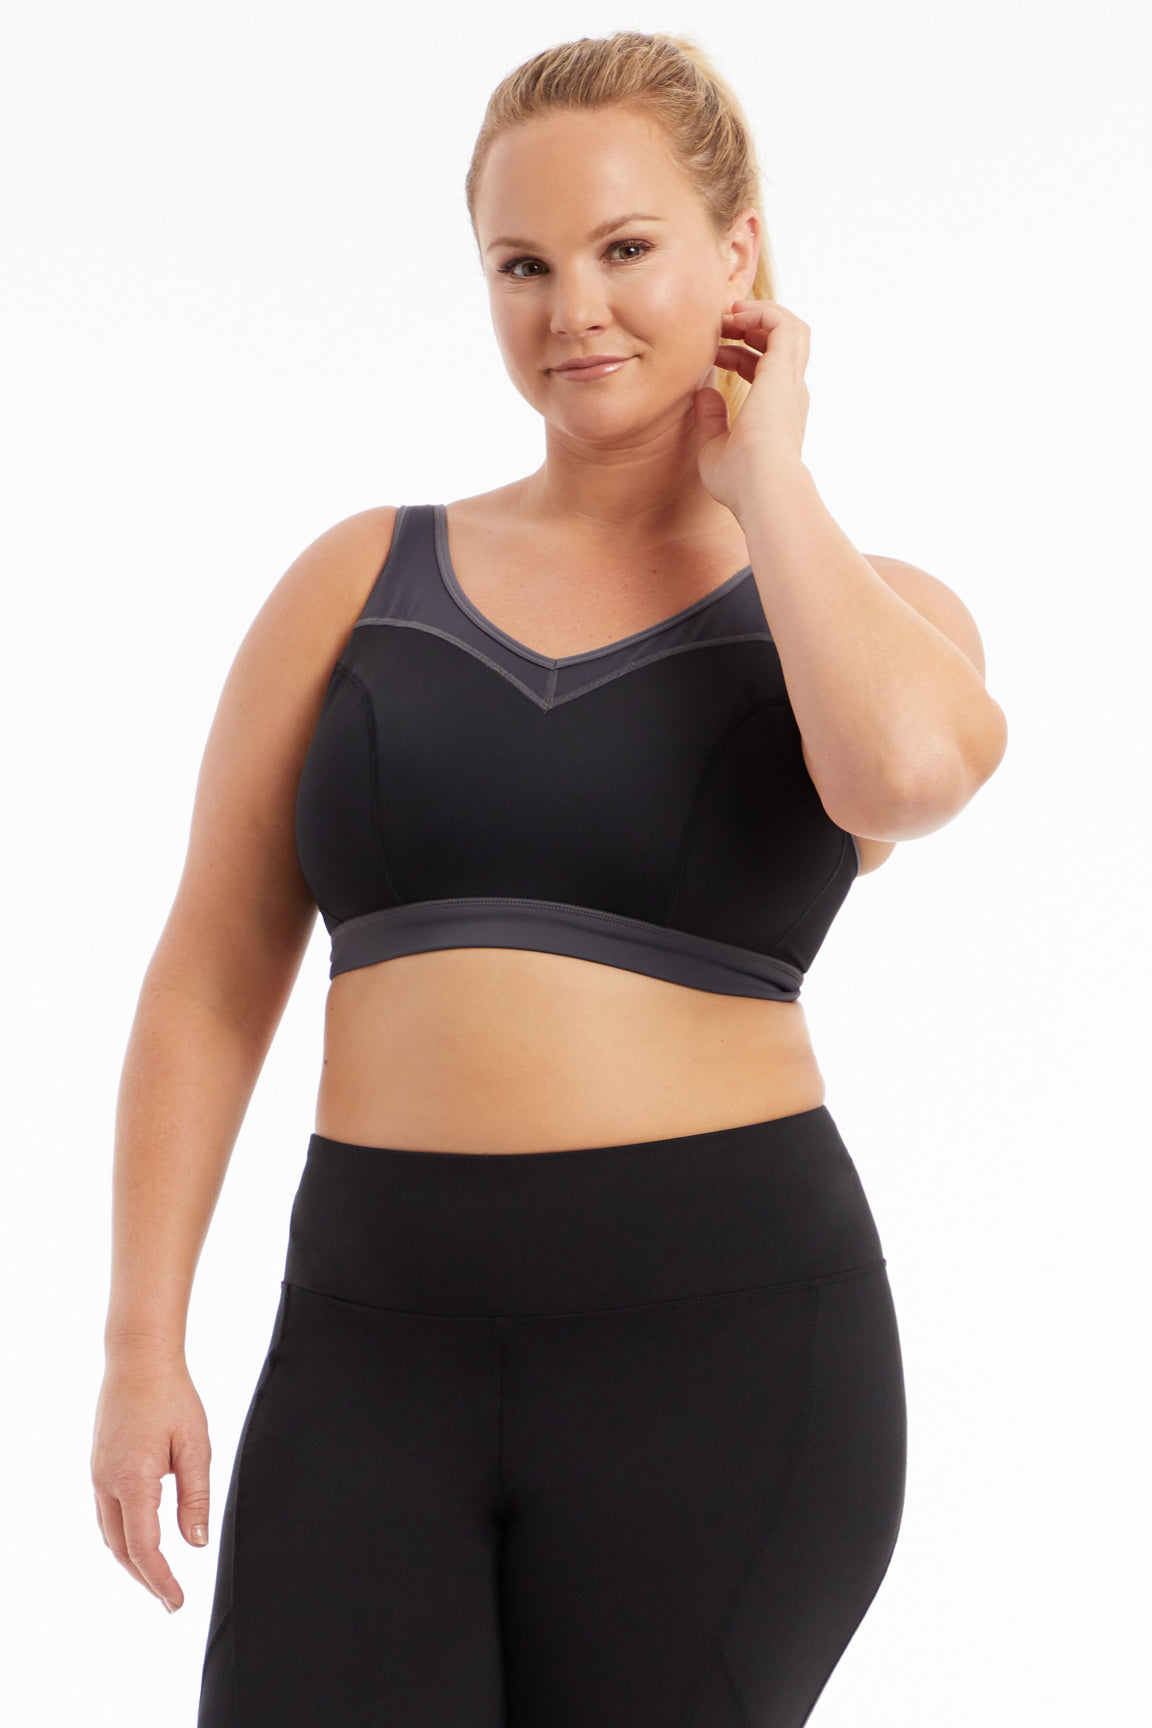 b2d1e99218a16 Polyanna Sports Bra (Plus Size).  39.99  55.00 Available in 2 Colors